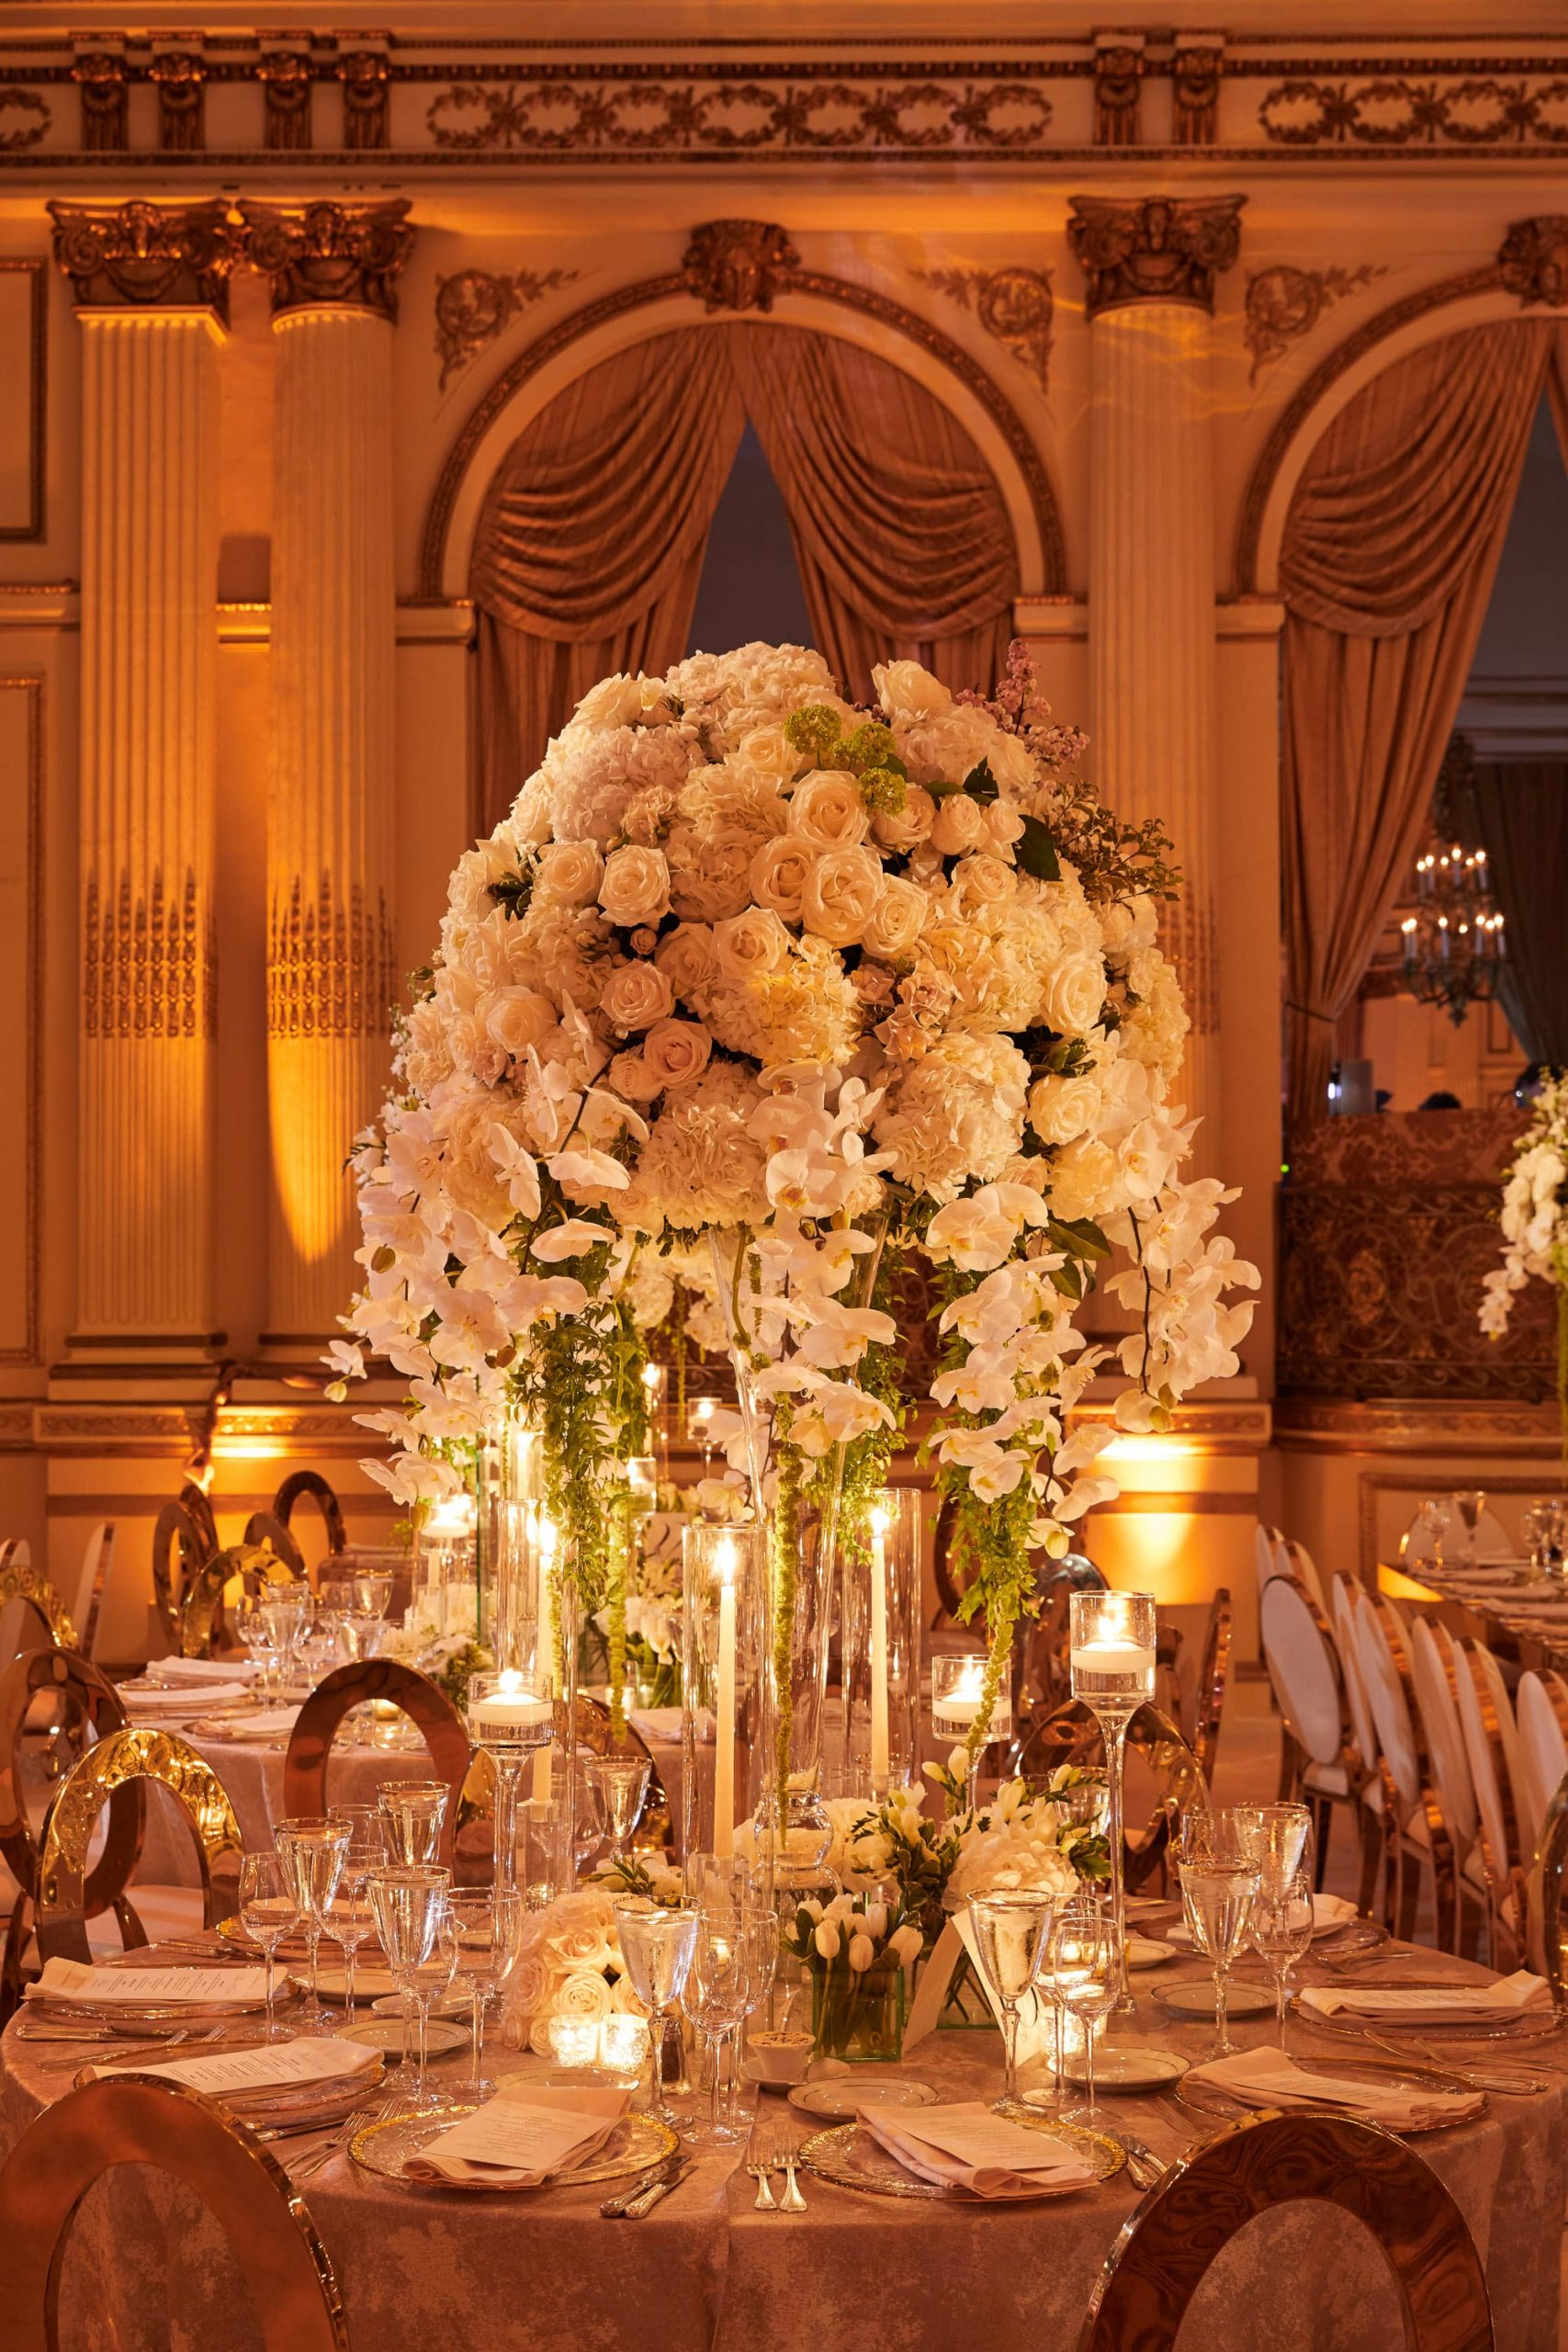 Floral arrangement designed by Ed Libby at gilded reception at this classic autumn wedding at The Plaza in NYC | Photo by Christian Oth Studio